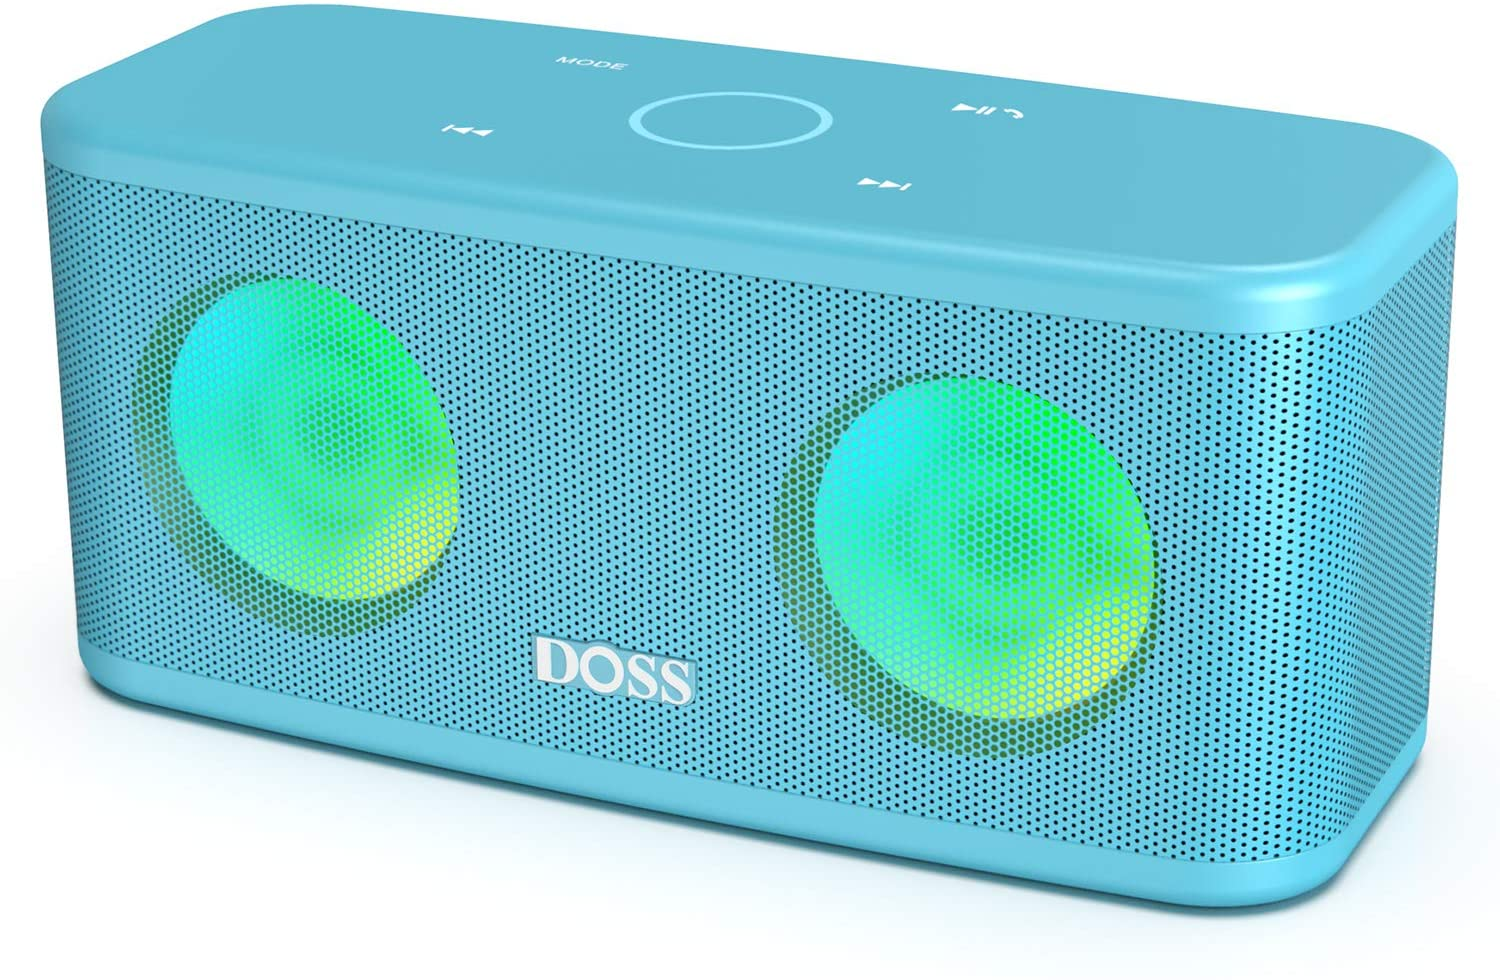 Doss Soundbox Plus Portable Wireless Bluetooth Speaker With Hd Sound And Deep Bass Wireless Stereo Paring Built In Walmart Canada